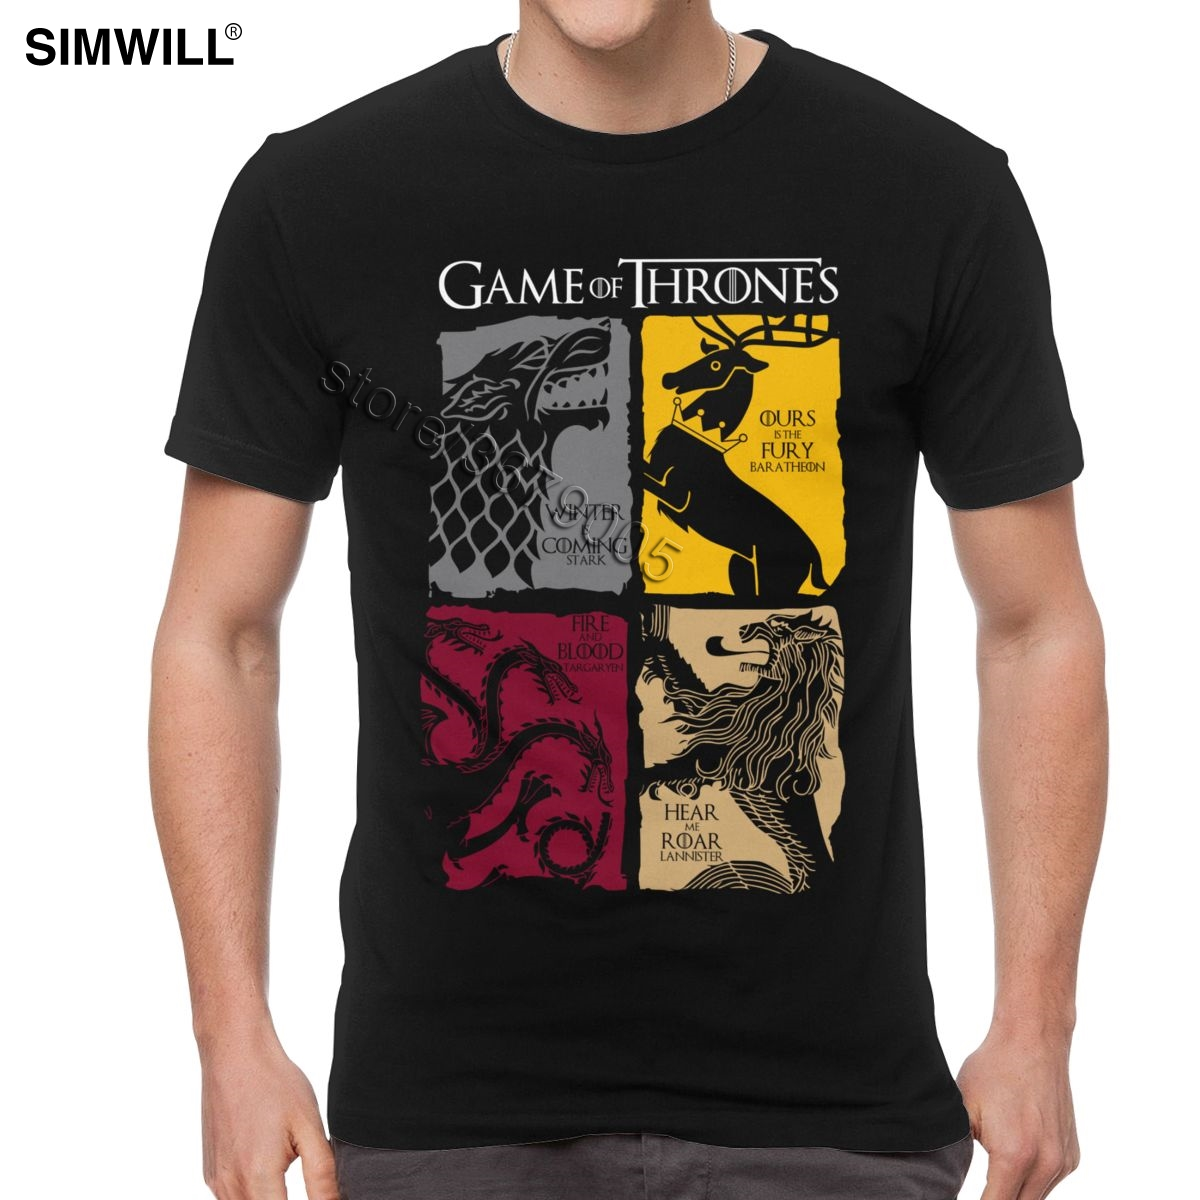 Vintage Game Of Thrones T Shirt Men Short Sleeved House Stark T-shirt Targaryen Lannister Tees Cotton Tshirt Oversized Clothing